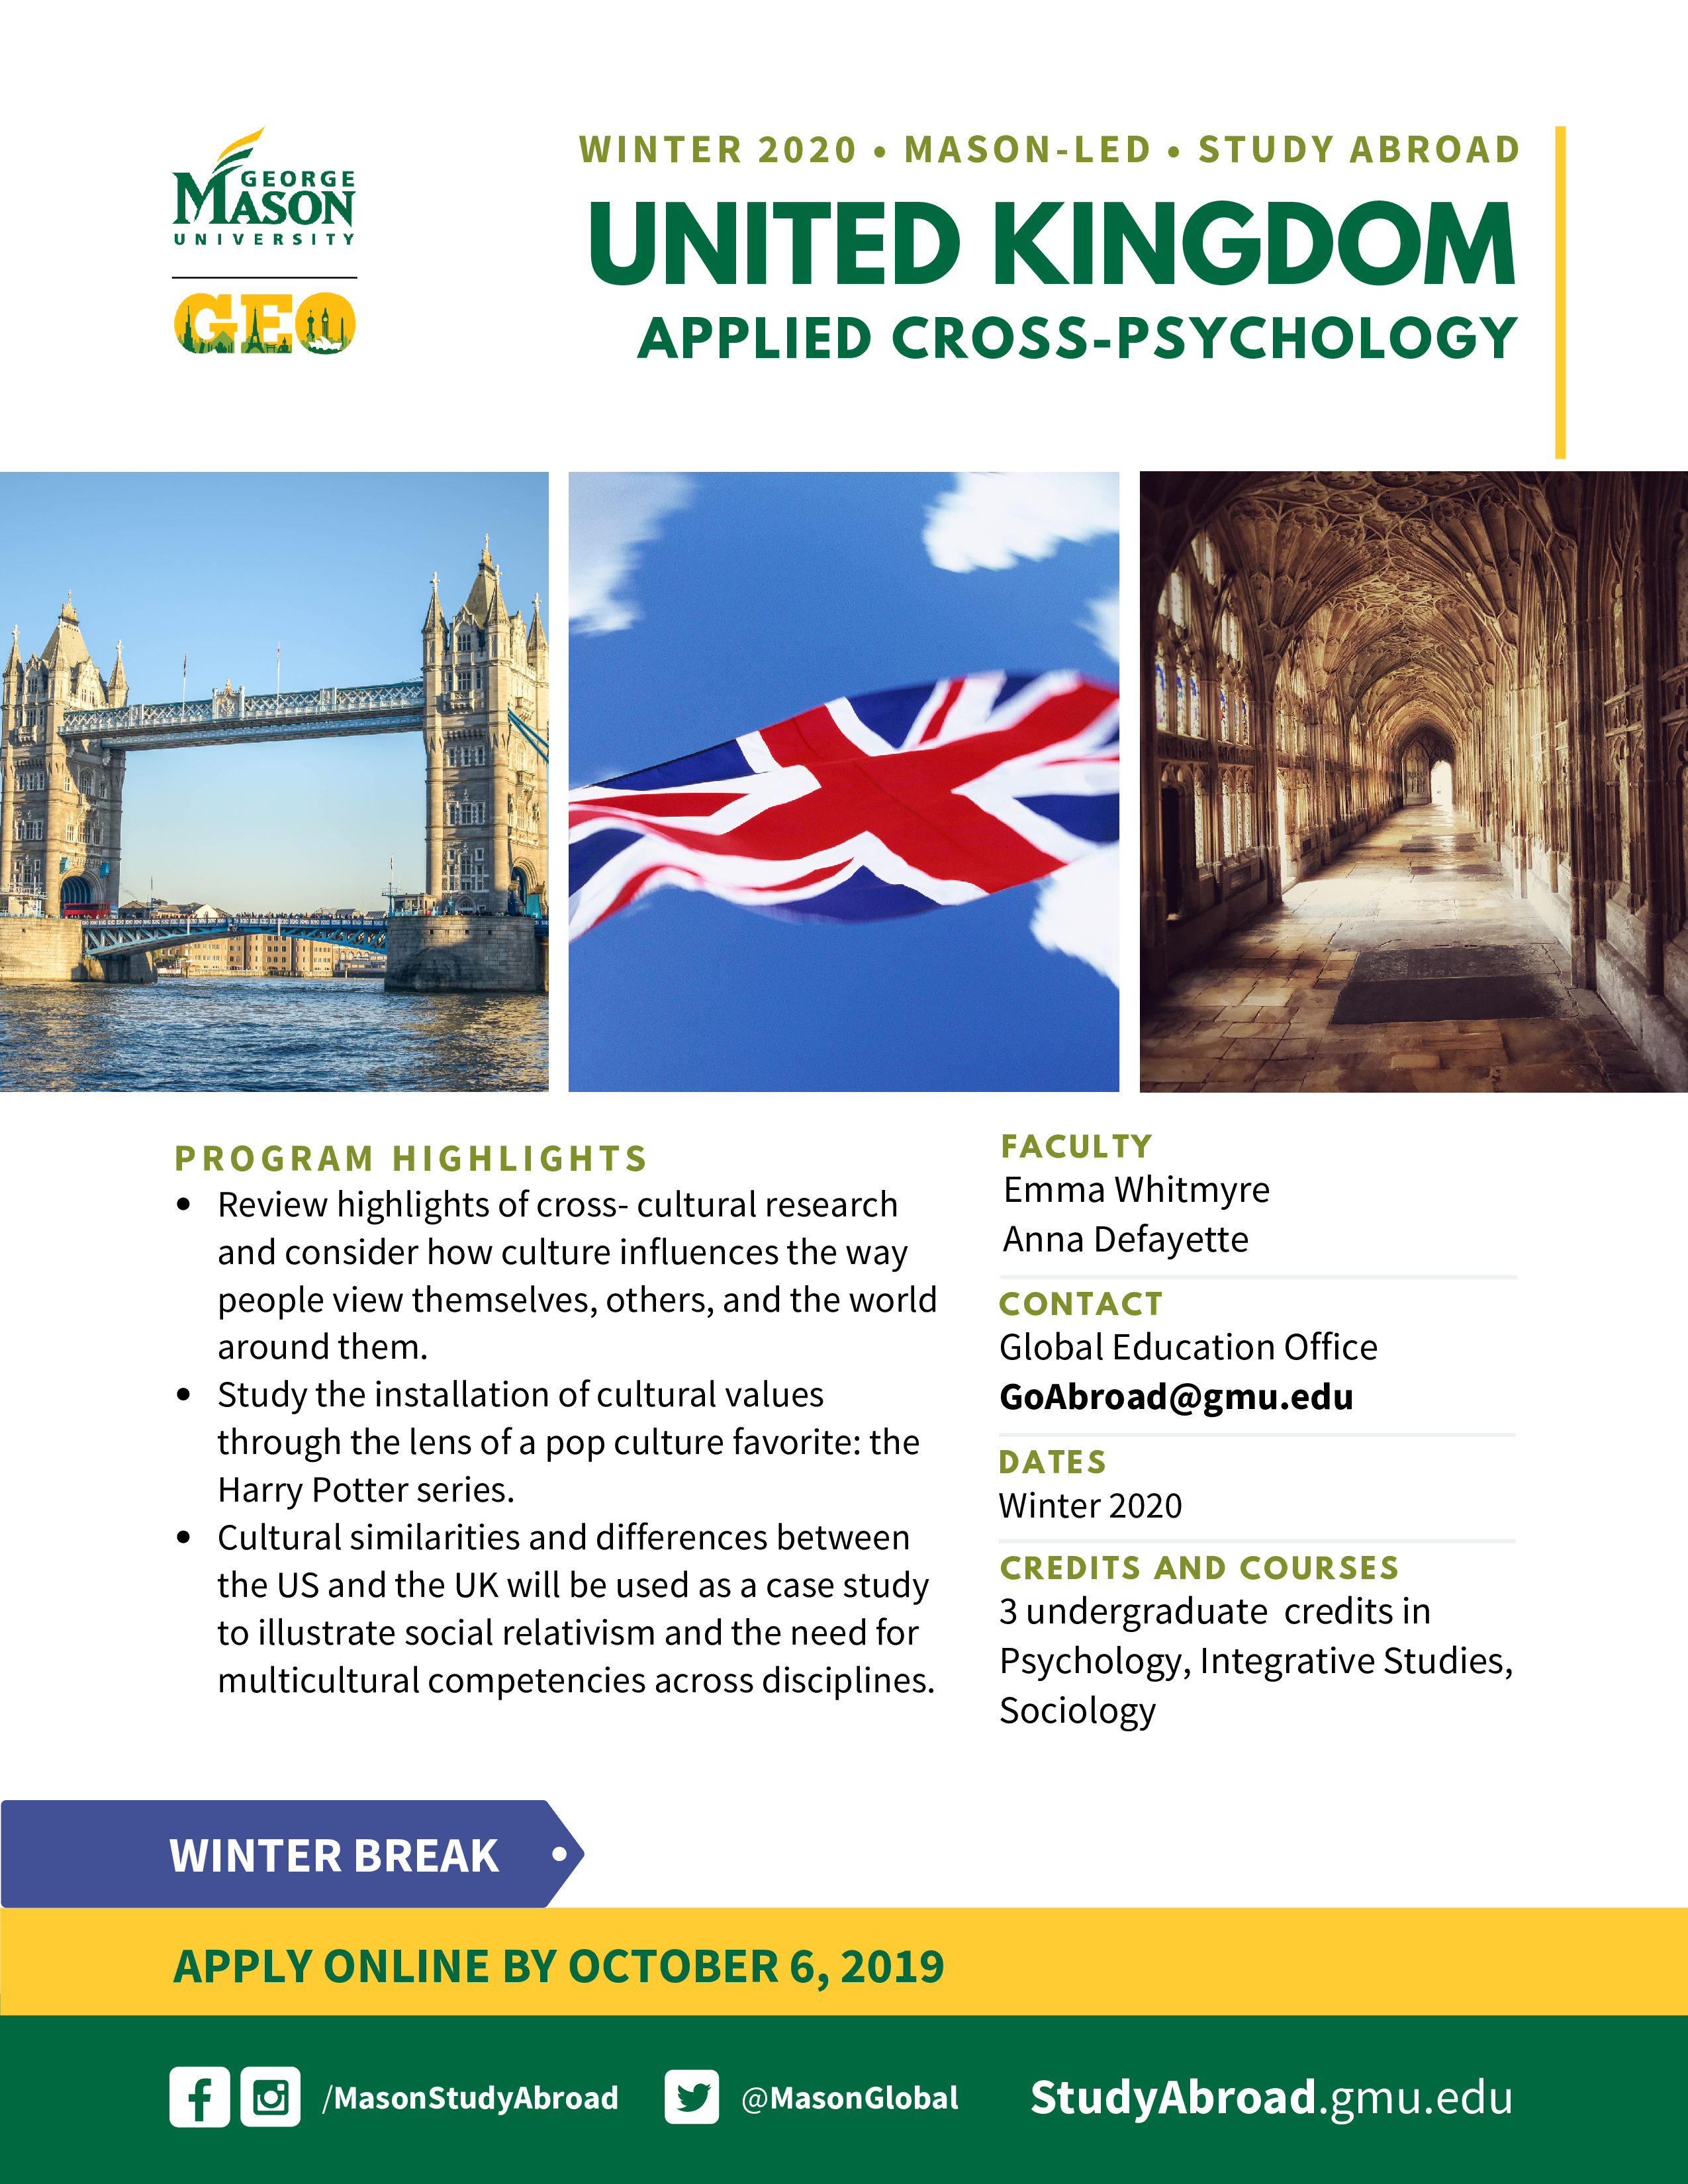 Information regarding UK_Psych is as follows Create Your Own Tags: is #studyabroad and Start date (when you would like your content to be posted) is May 28 2019 and End Date  (when you would like your content to be removed from the screens) is December 21 2019 and File is Browse and Email is dellesmd@gmu.edu and Name is Denise Elles-Mdahaur and Group Name is Global Education Office and File Name is 2020-WI-UK_Psyc_comp.jpg and Affiliation is Mason Department and Panel for your ad to be displayed is Side and Name of Ad/Event is UK_Psych and